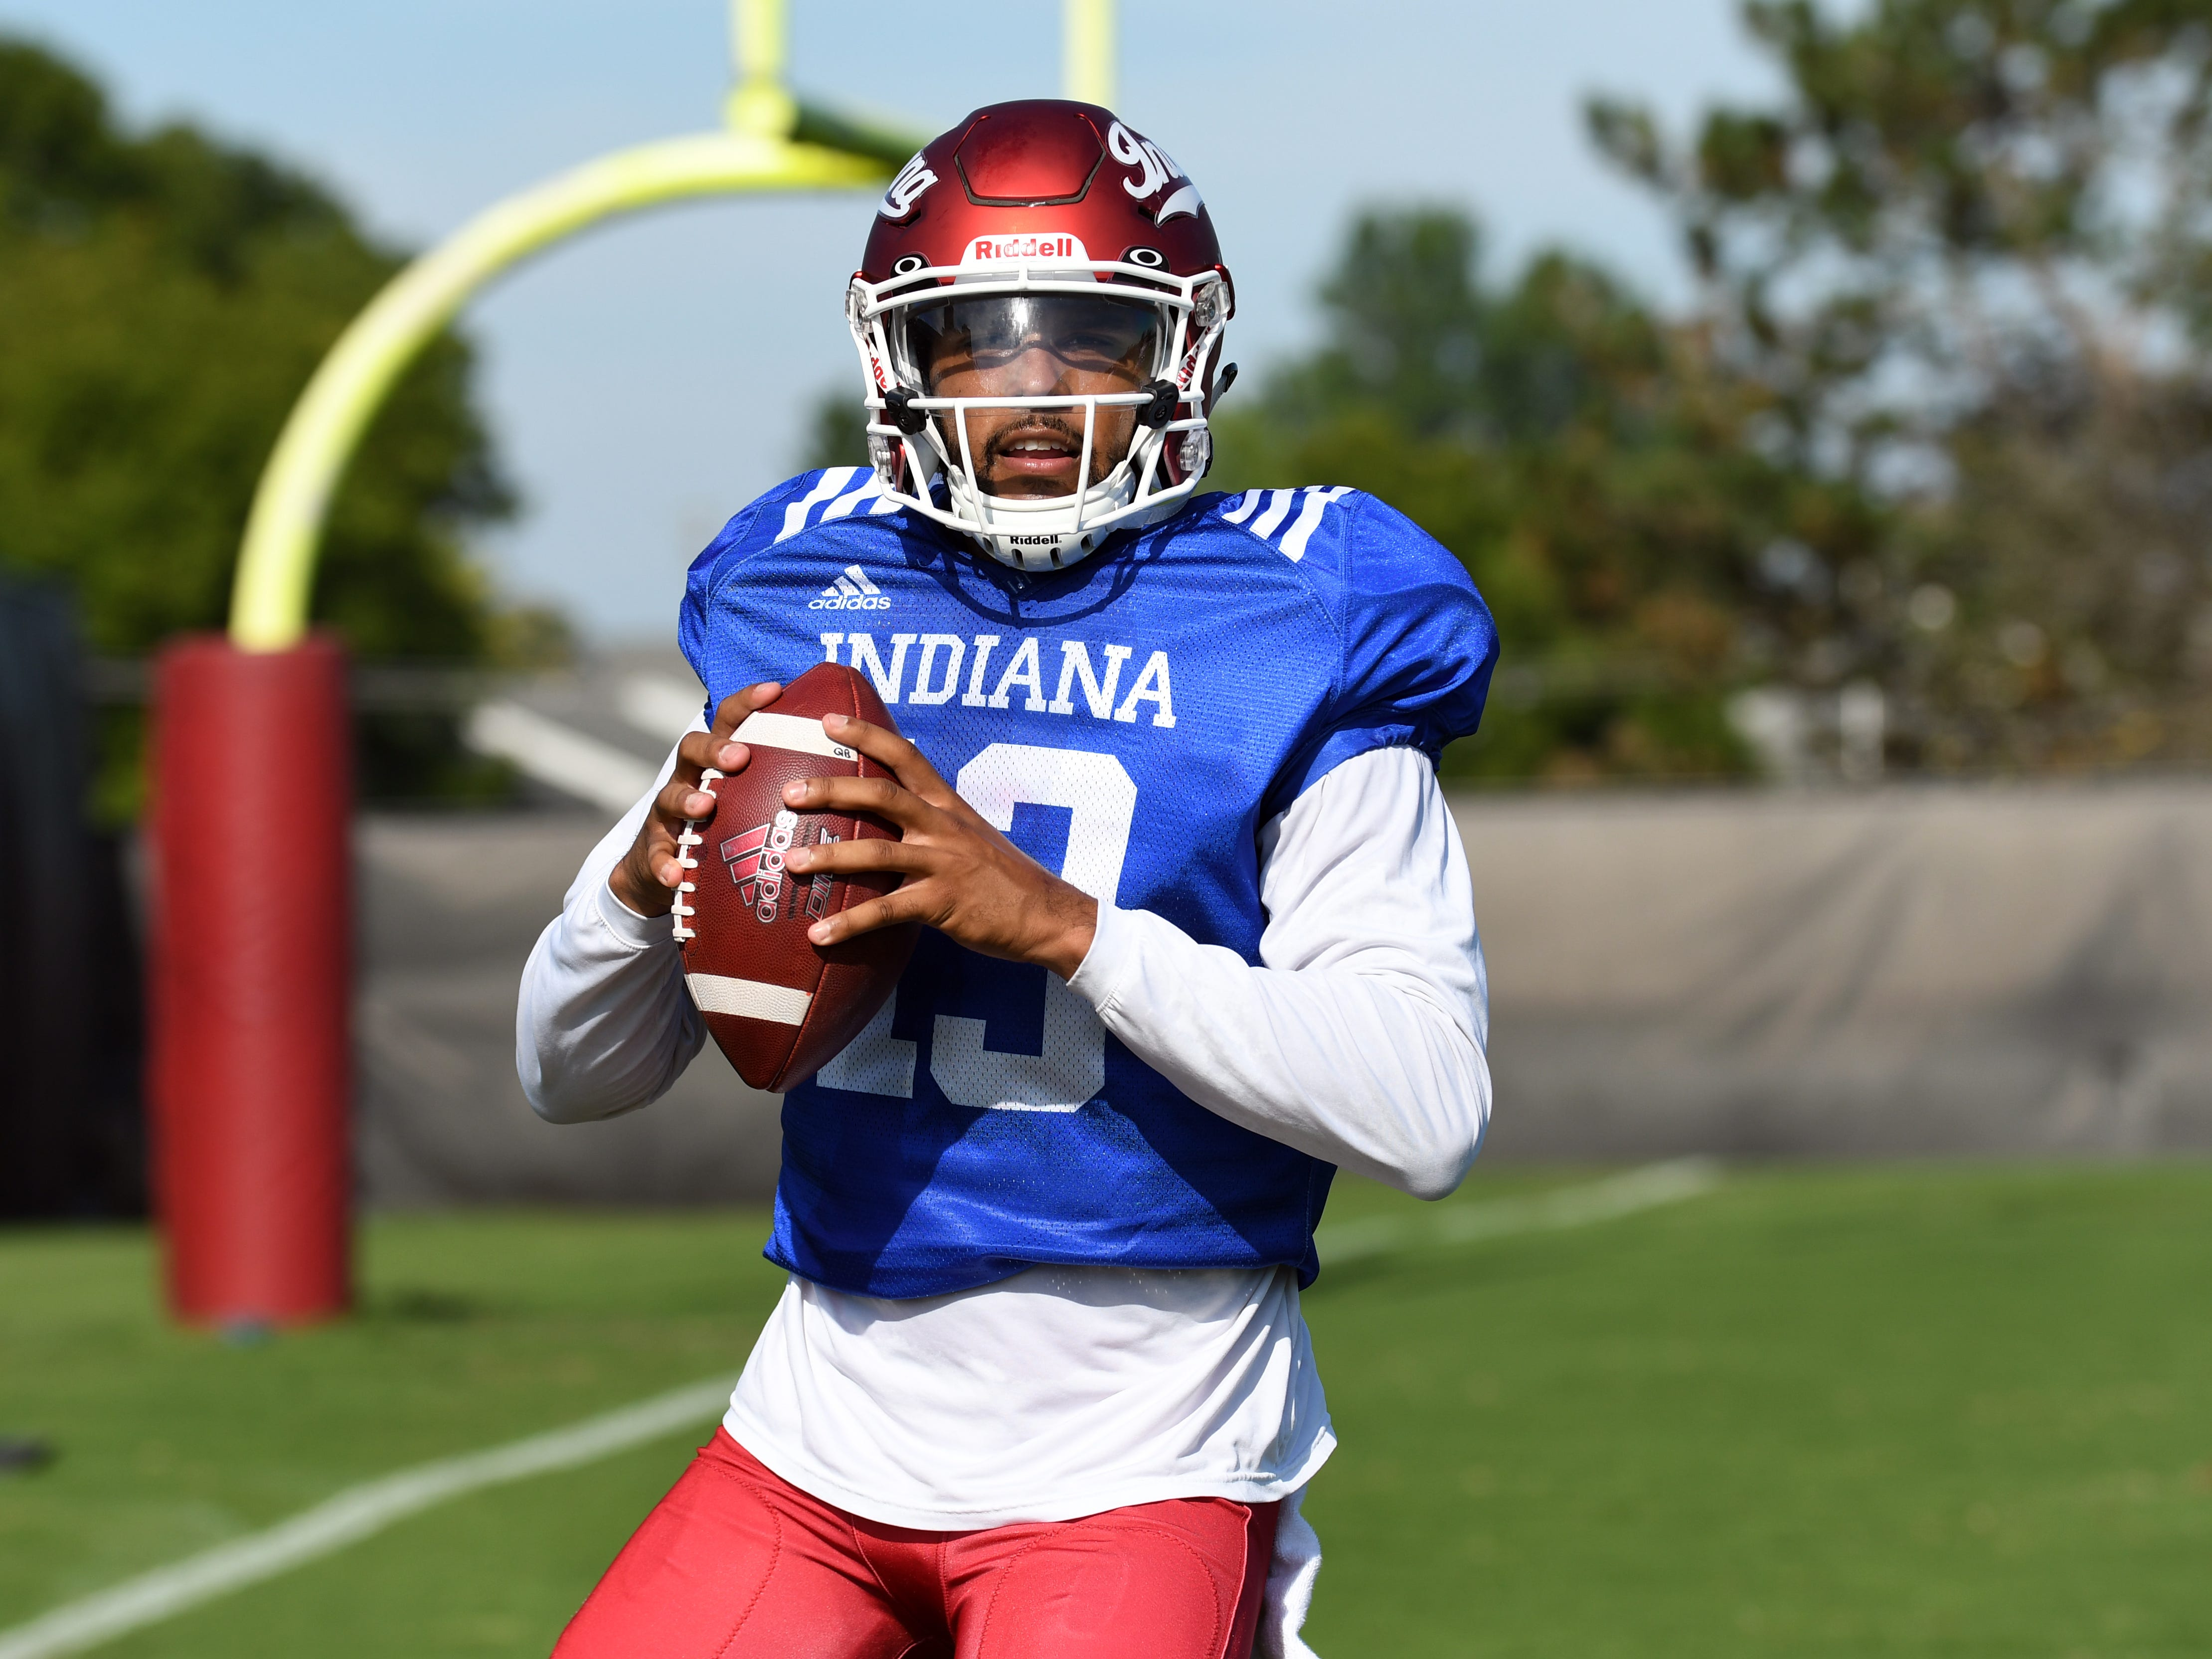 Indiana Hoosiers quarterback Brandon Dawkins (13) drops back during a drill during practice at Mellencamp Pavilion in Bloomington, Ind., on Monday, August 6, 2018.